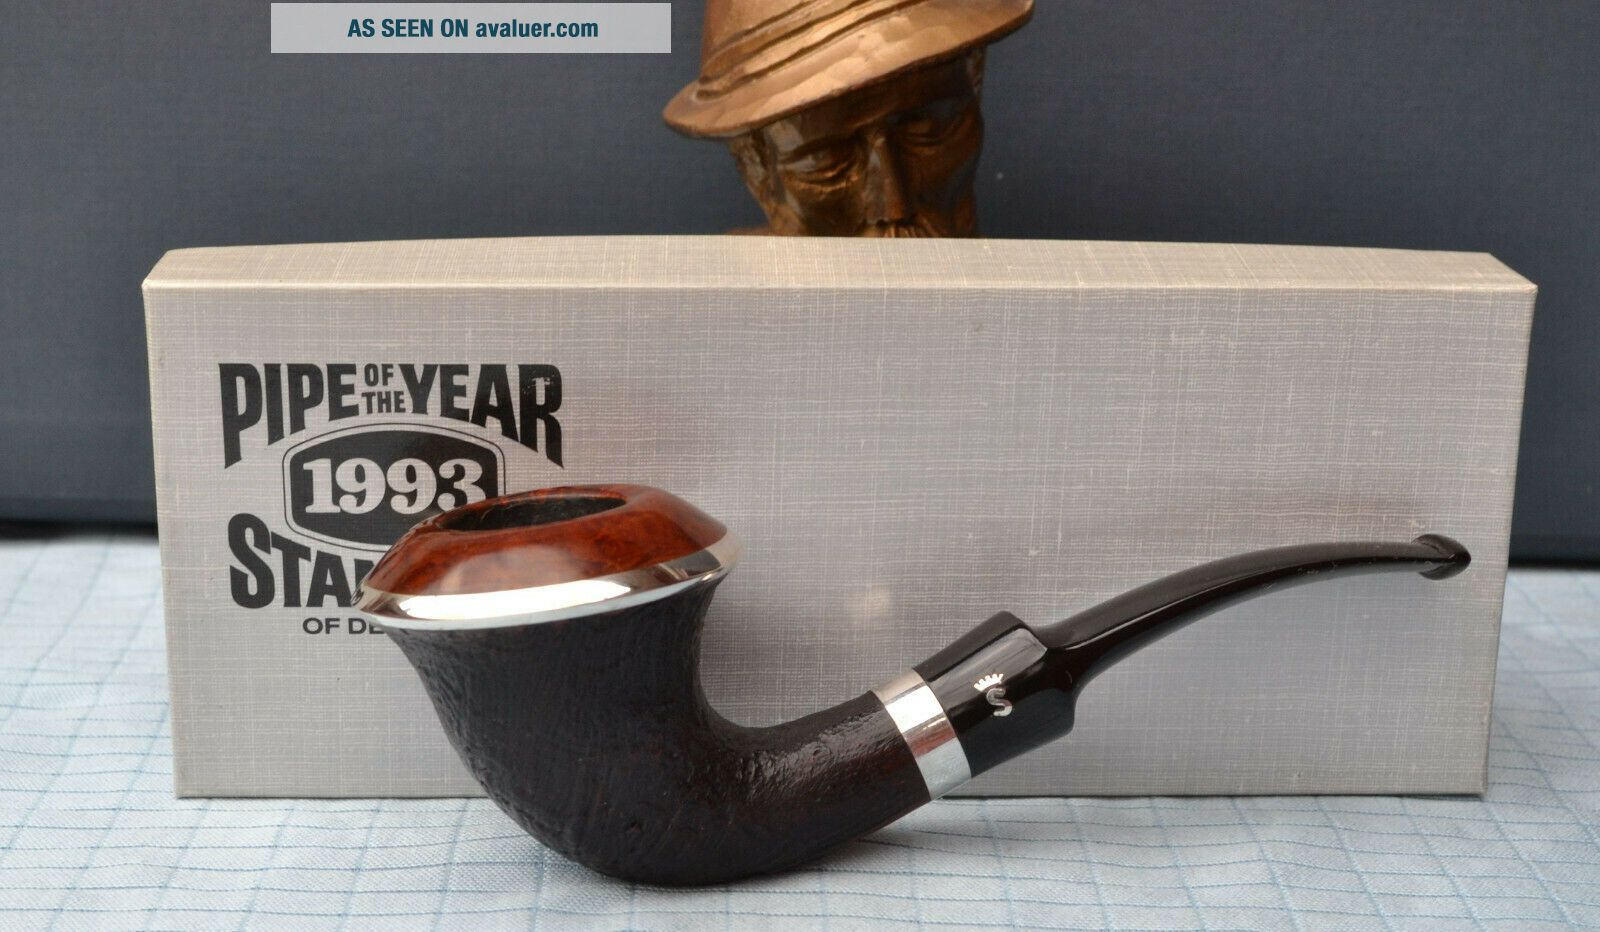 TOP STANWELL YEAR PIPE 1993 SILVER DESIGN BY SIXTEN IVARSSON 9 mm Filter